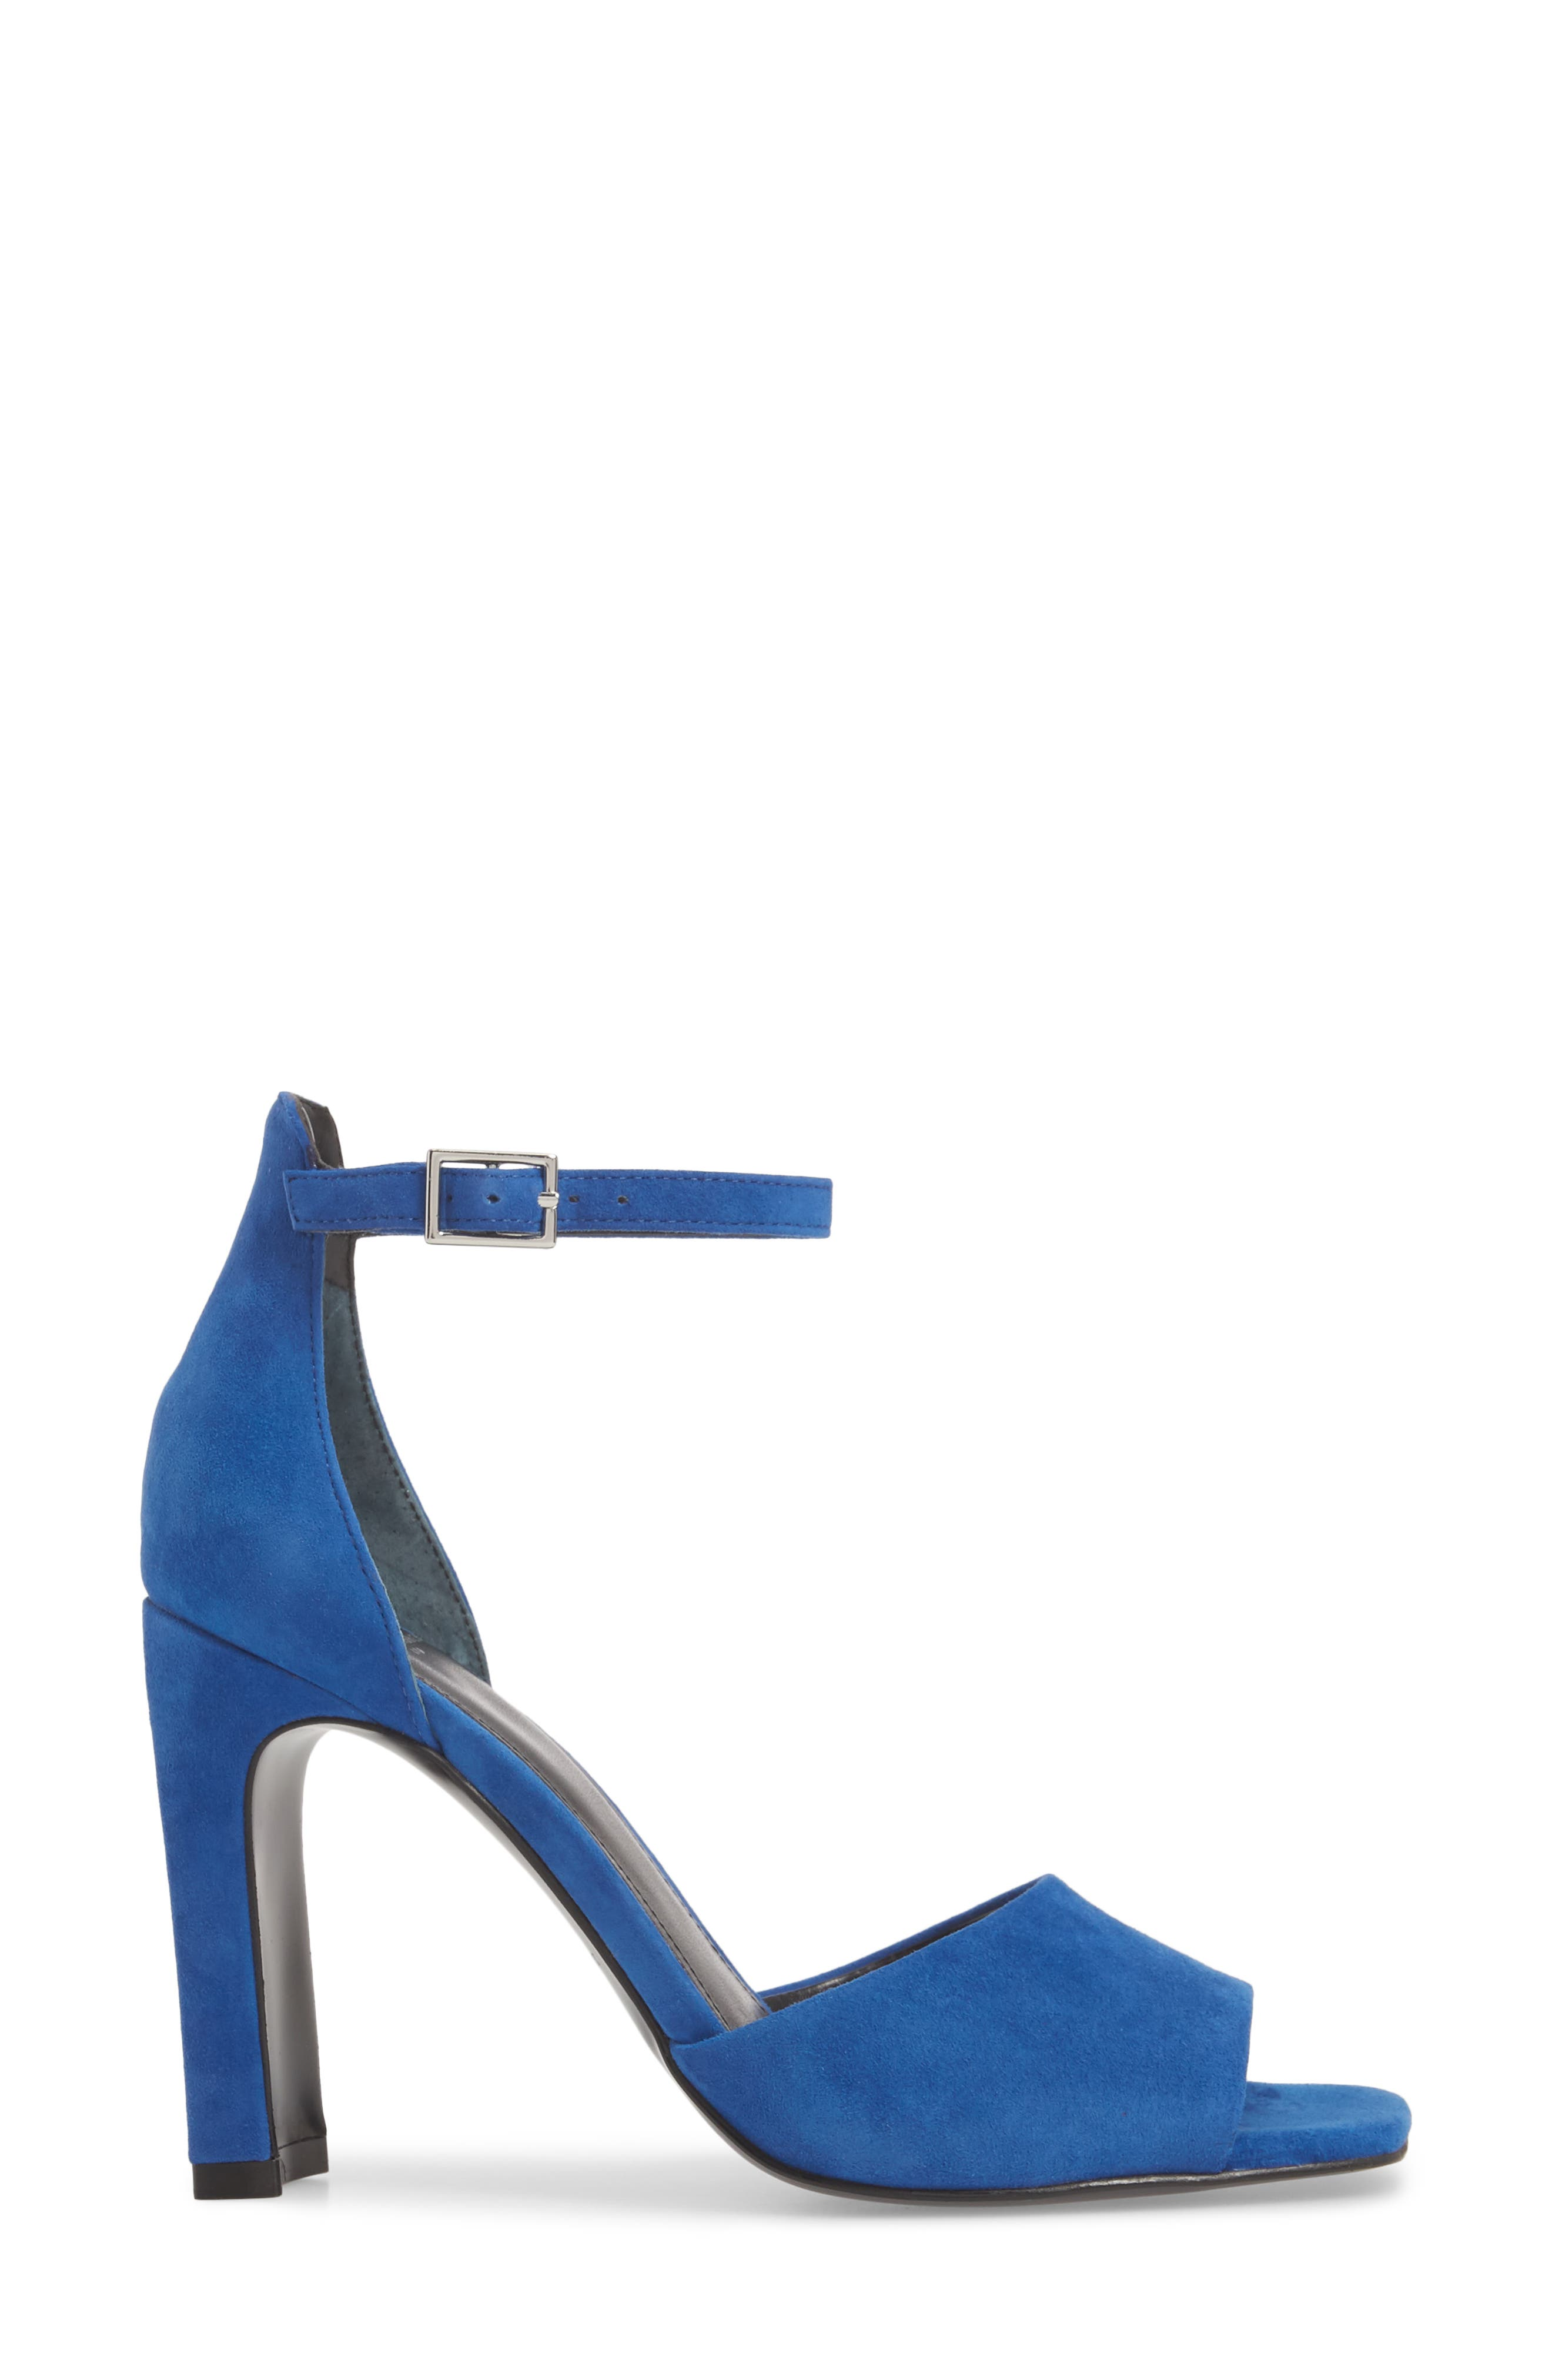 Harlin Ankle Strap Sandal,                             Alternate thumbnail 3, color,                             BLUE SUEDE